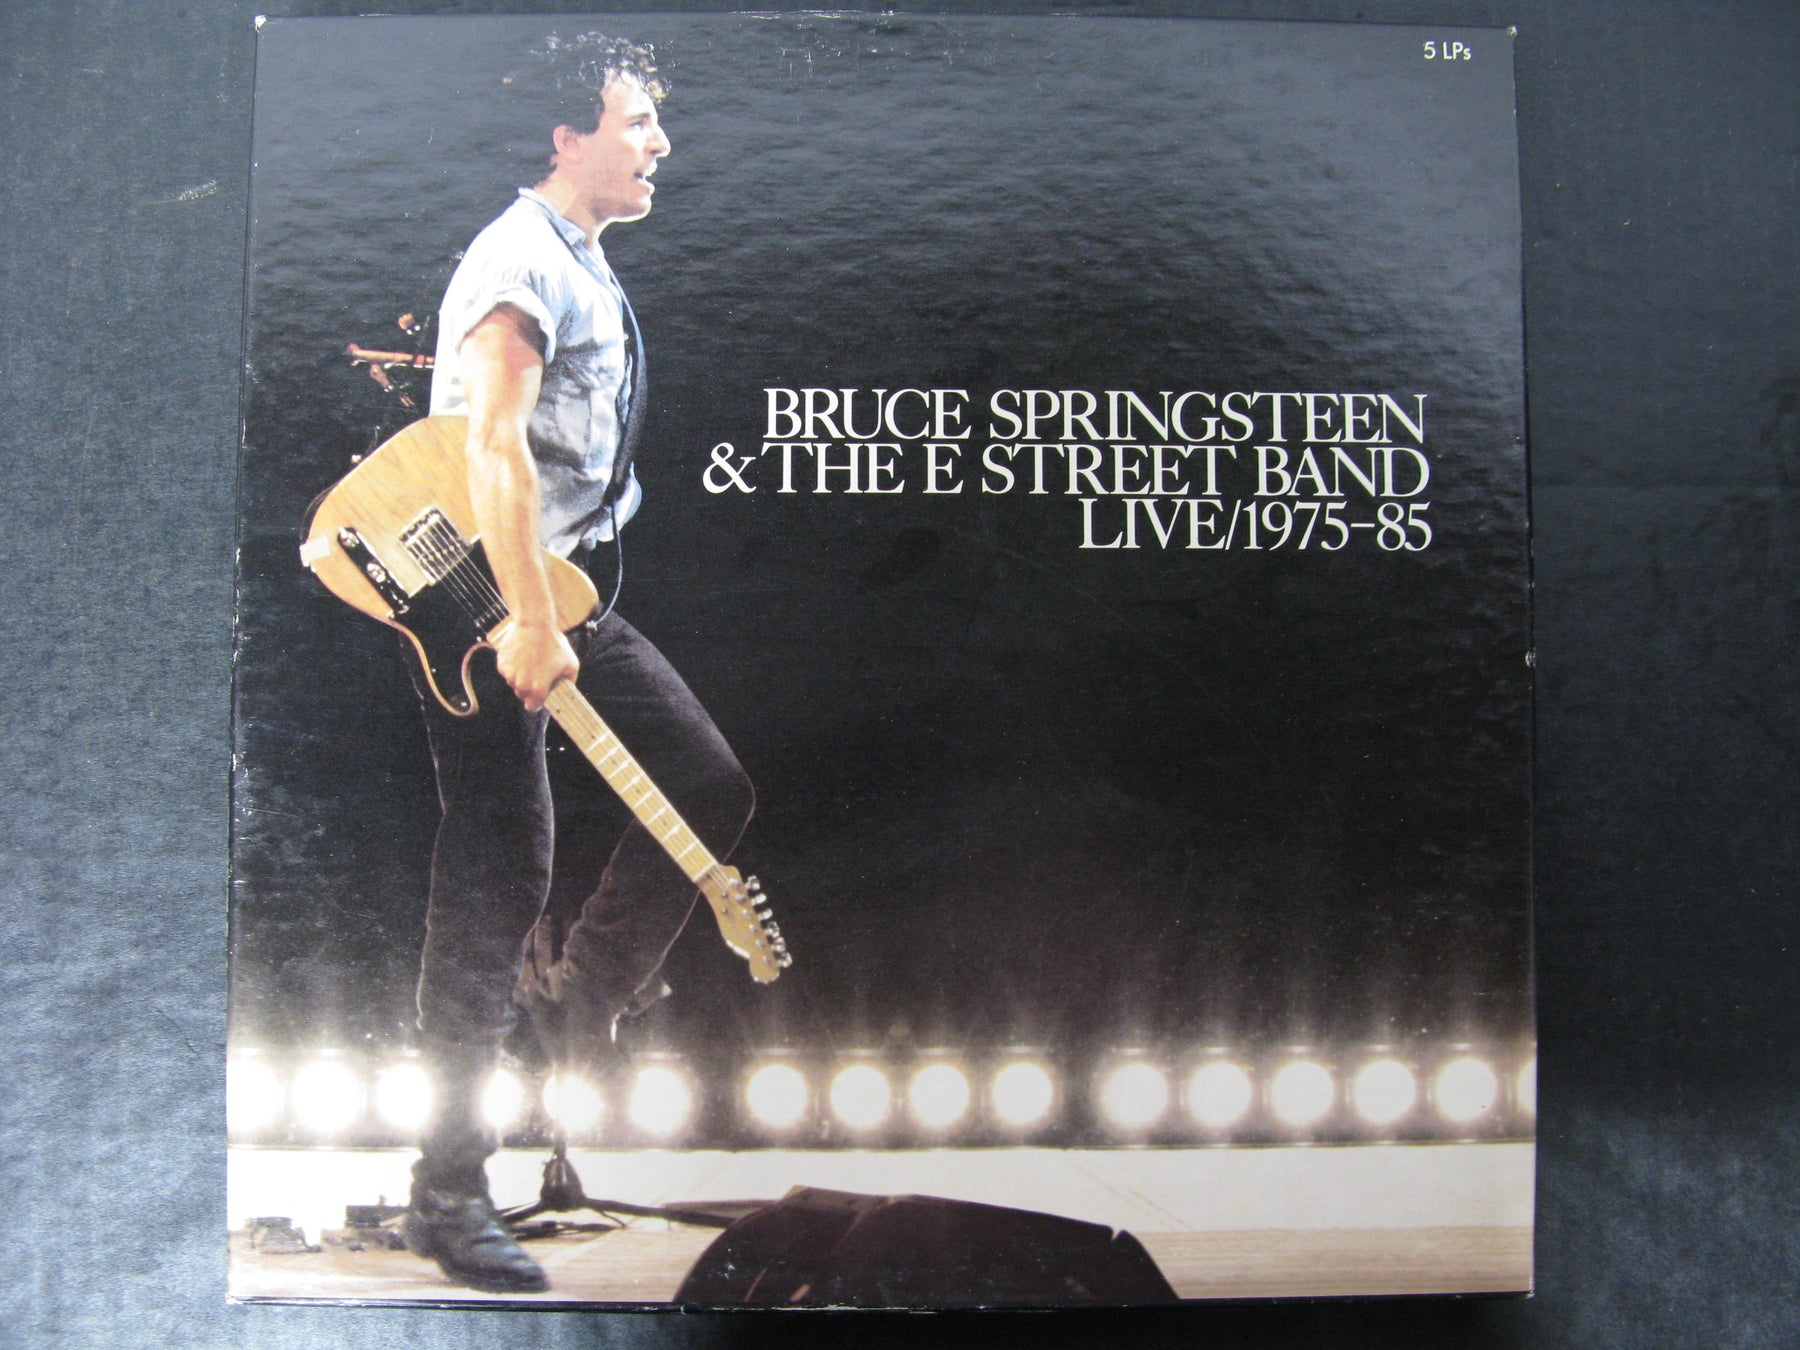 Bruce Springsteen & the E Street Band Live/1975-85 5 LPs Vinyl Records